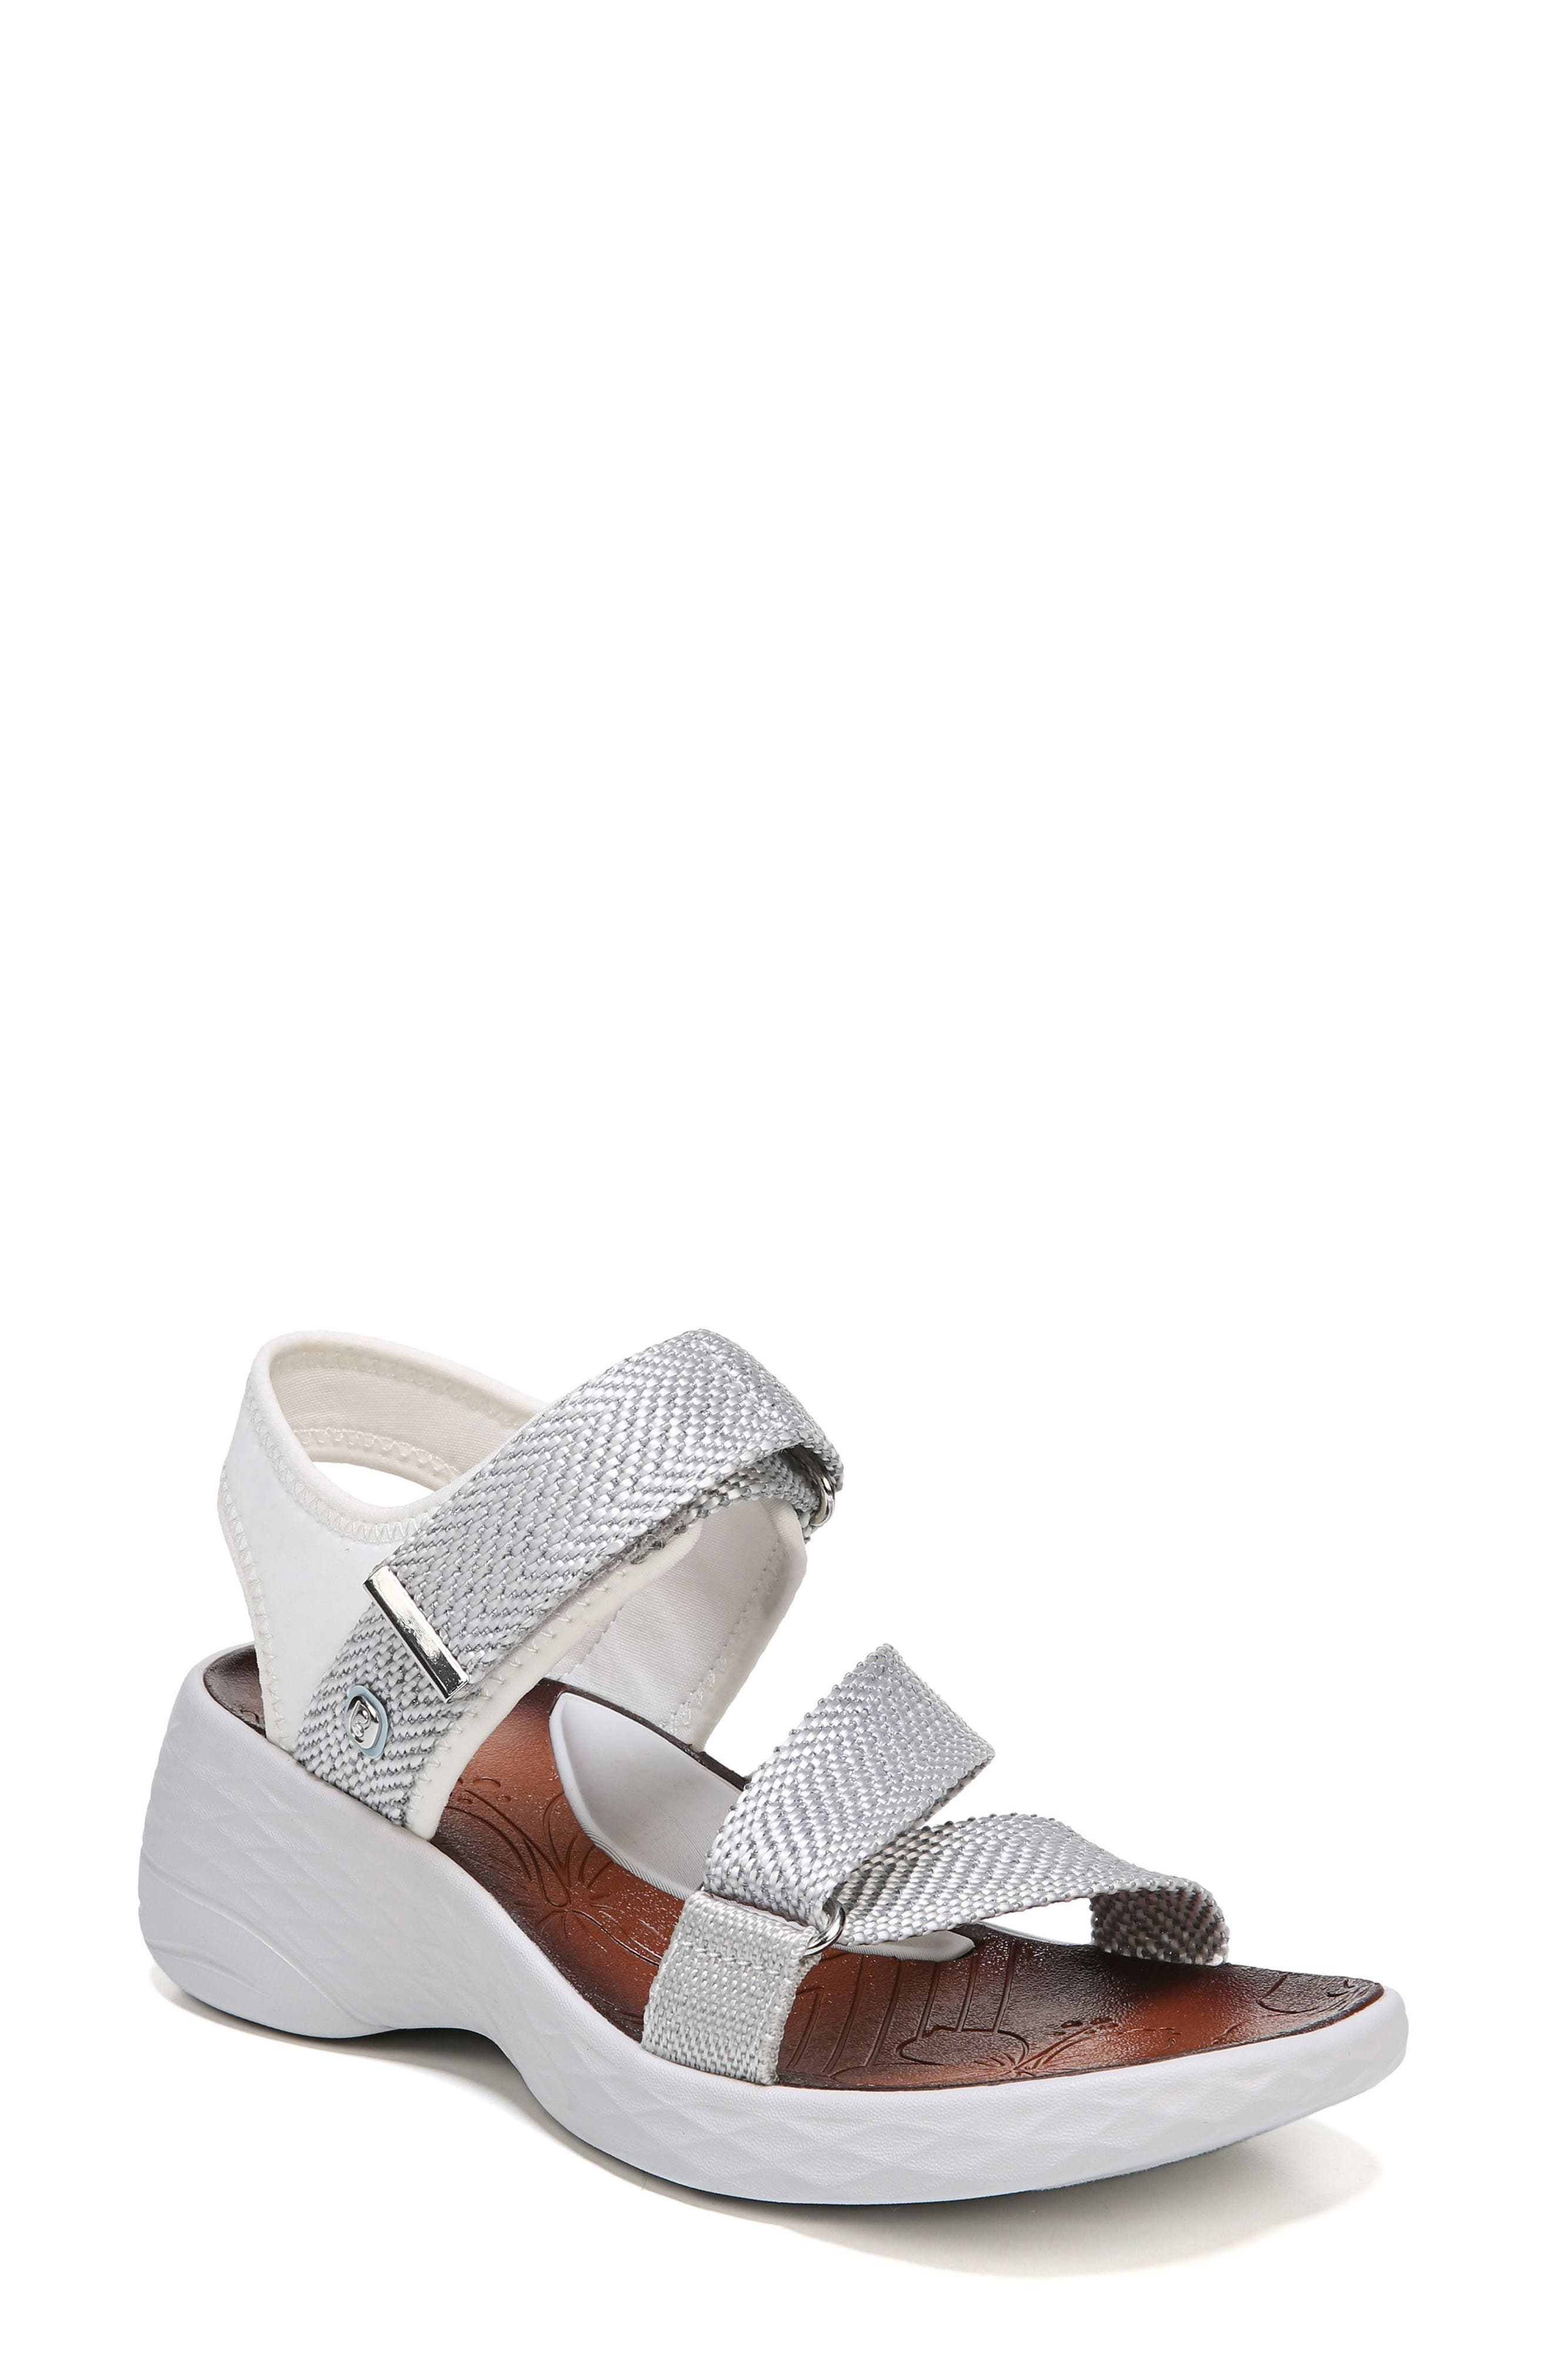 Jive Sandal,                         Main,                         color, White Fabric